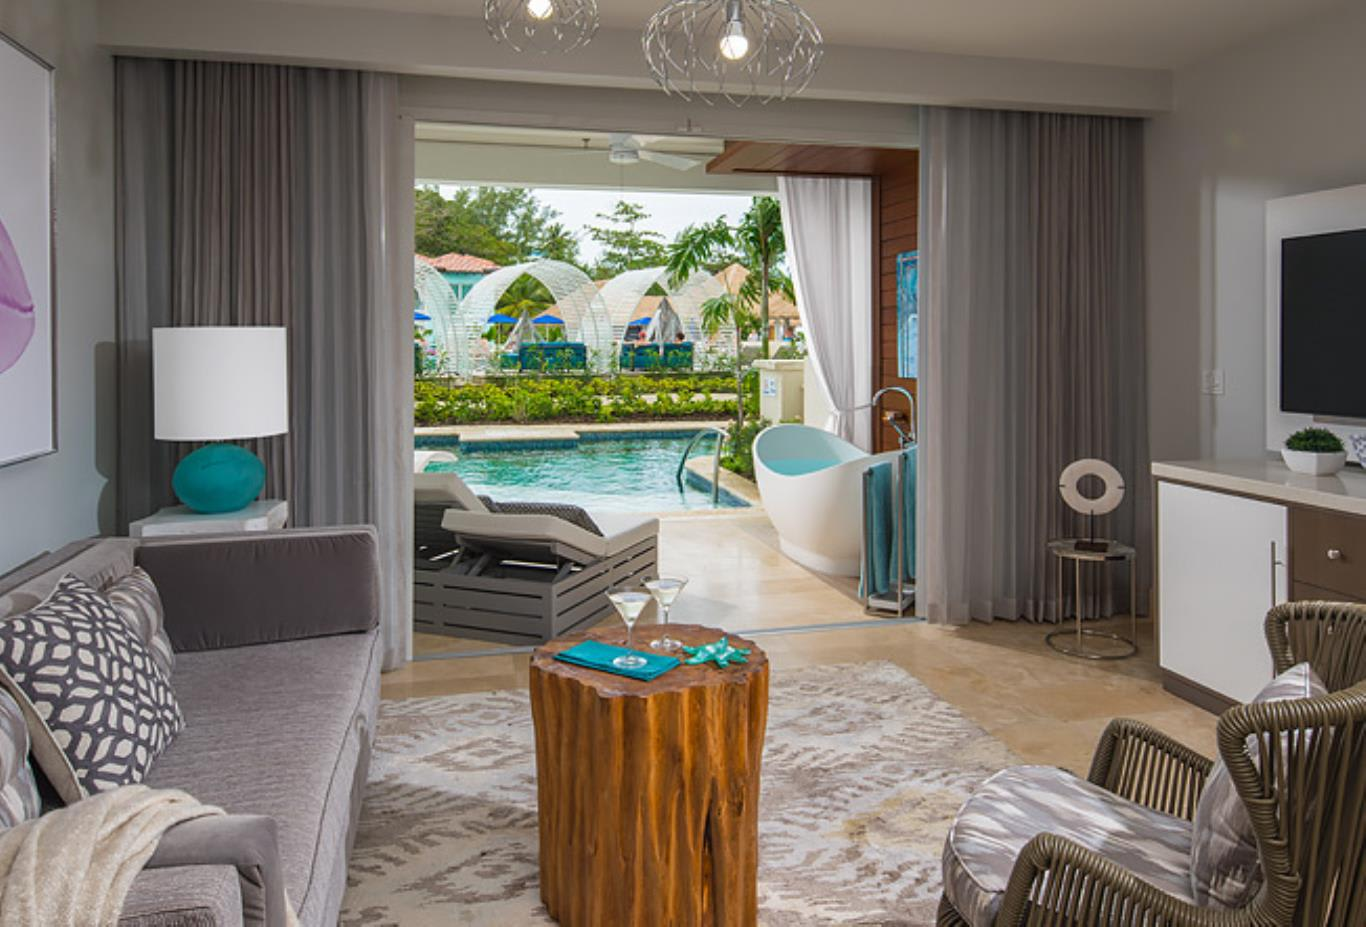 1SUP Royal Seaside Crystal Lagoon Swim Up One Bedroom Butler Suite with Balcony Tranquillity Soaking Tub living room